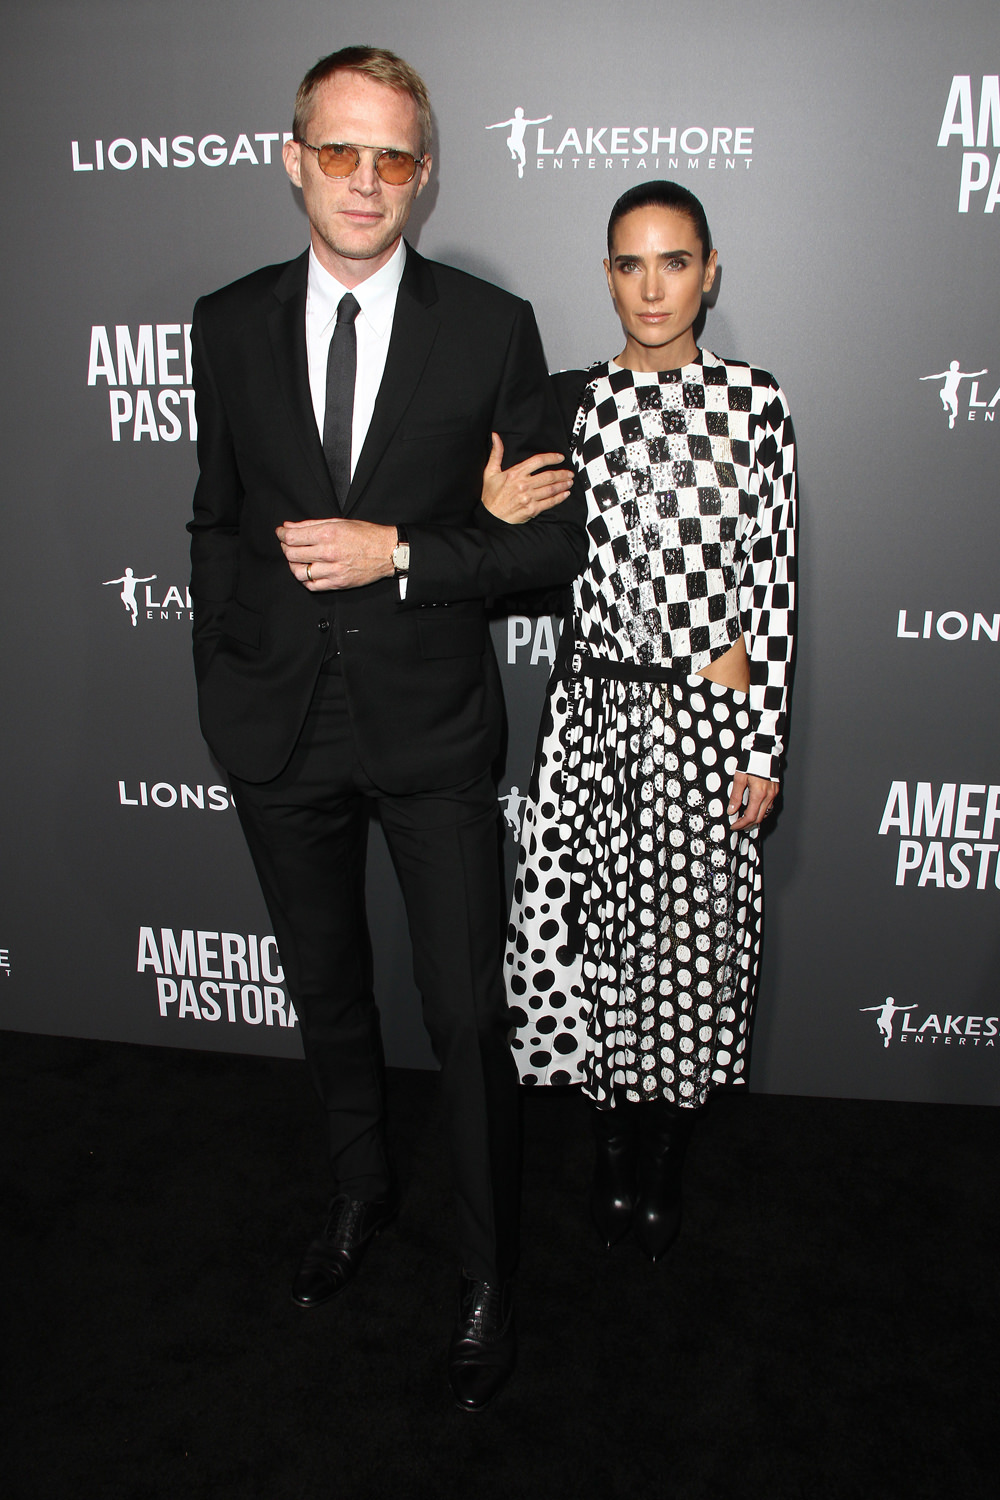 paul-bettany-jennifer-connelly-american-pastoral-los-angeles-special-screening-red-carpet-fashion-louis-vuitton-tom-lorenzo-site-1